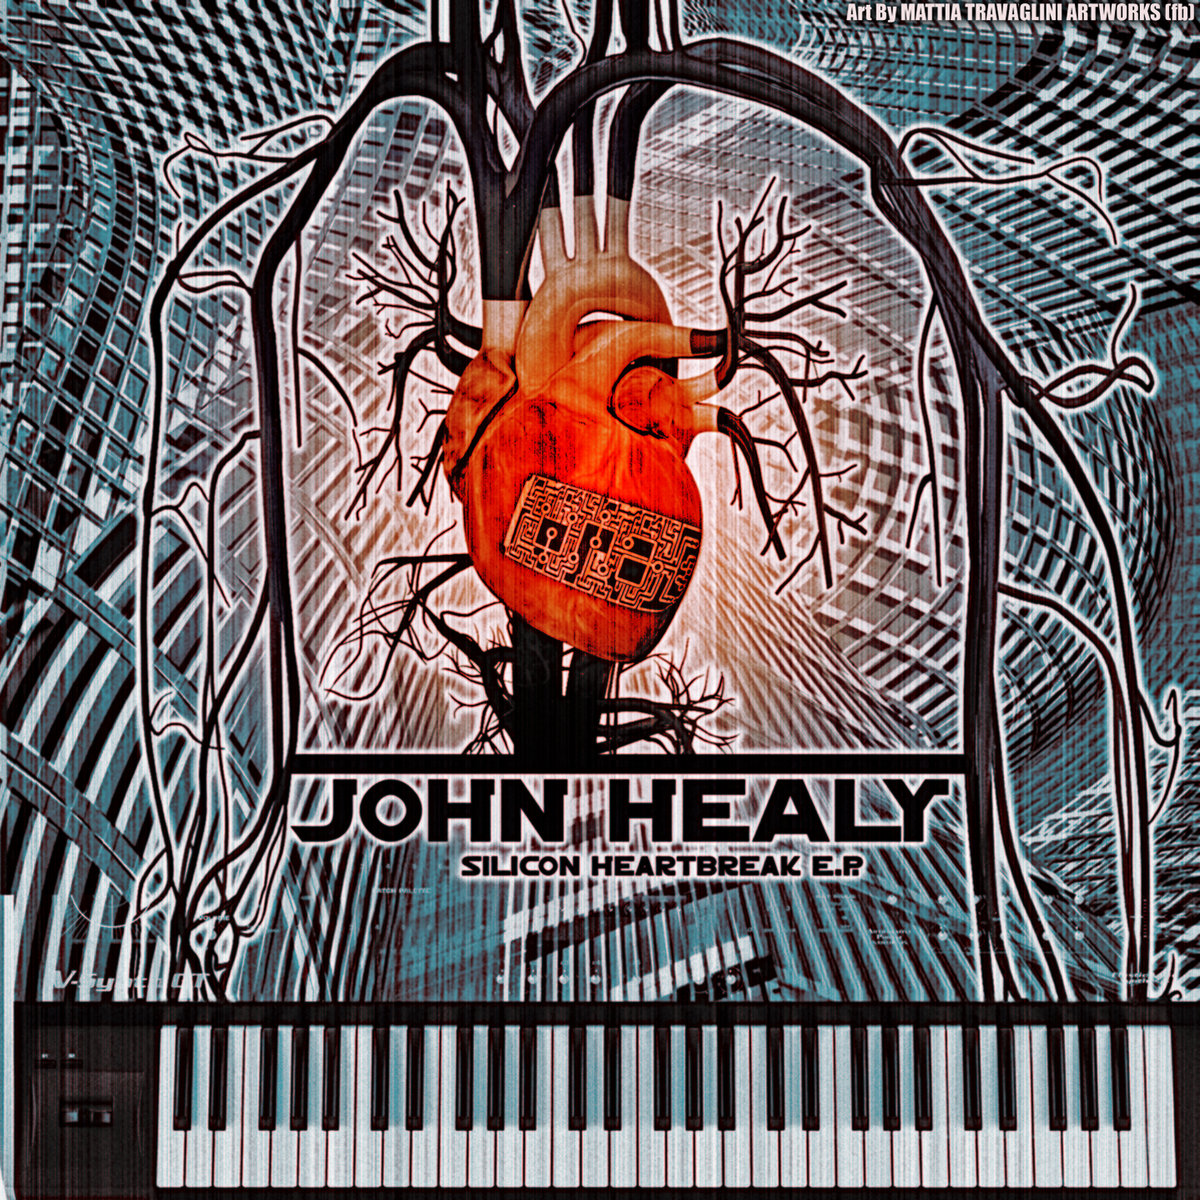 Heartbreak Over A Circuit Board Welsh Modular Alliance Silicon From E P By John Healy